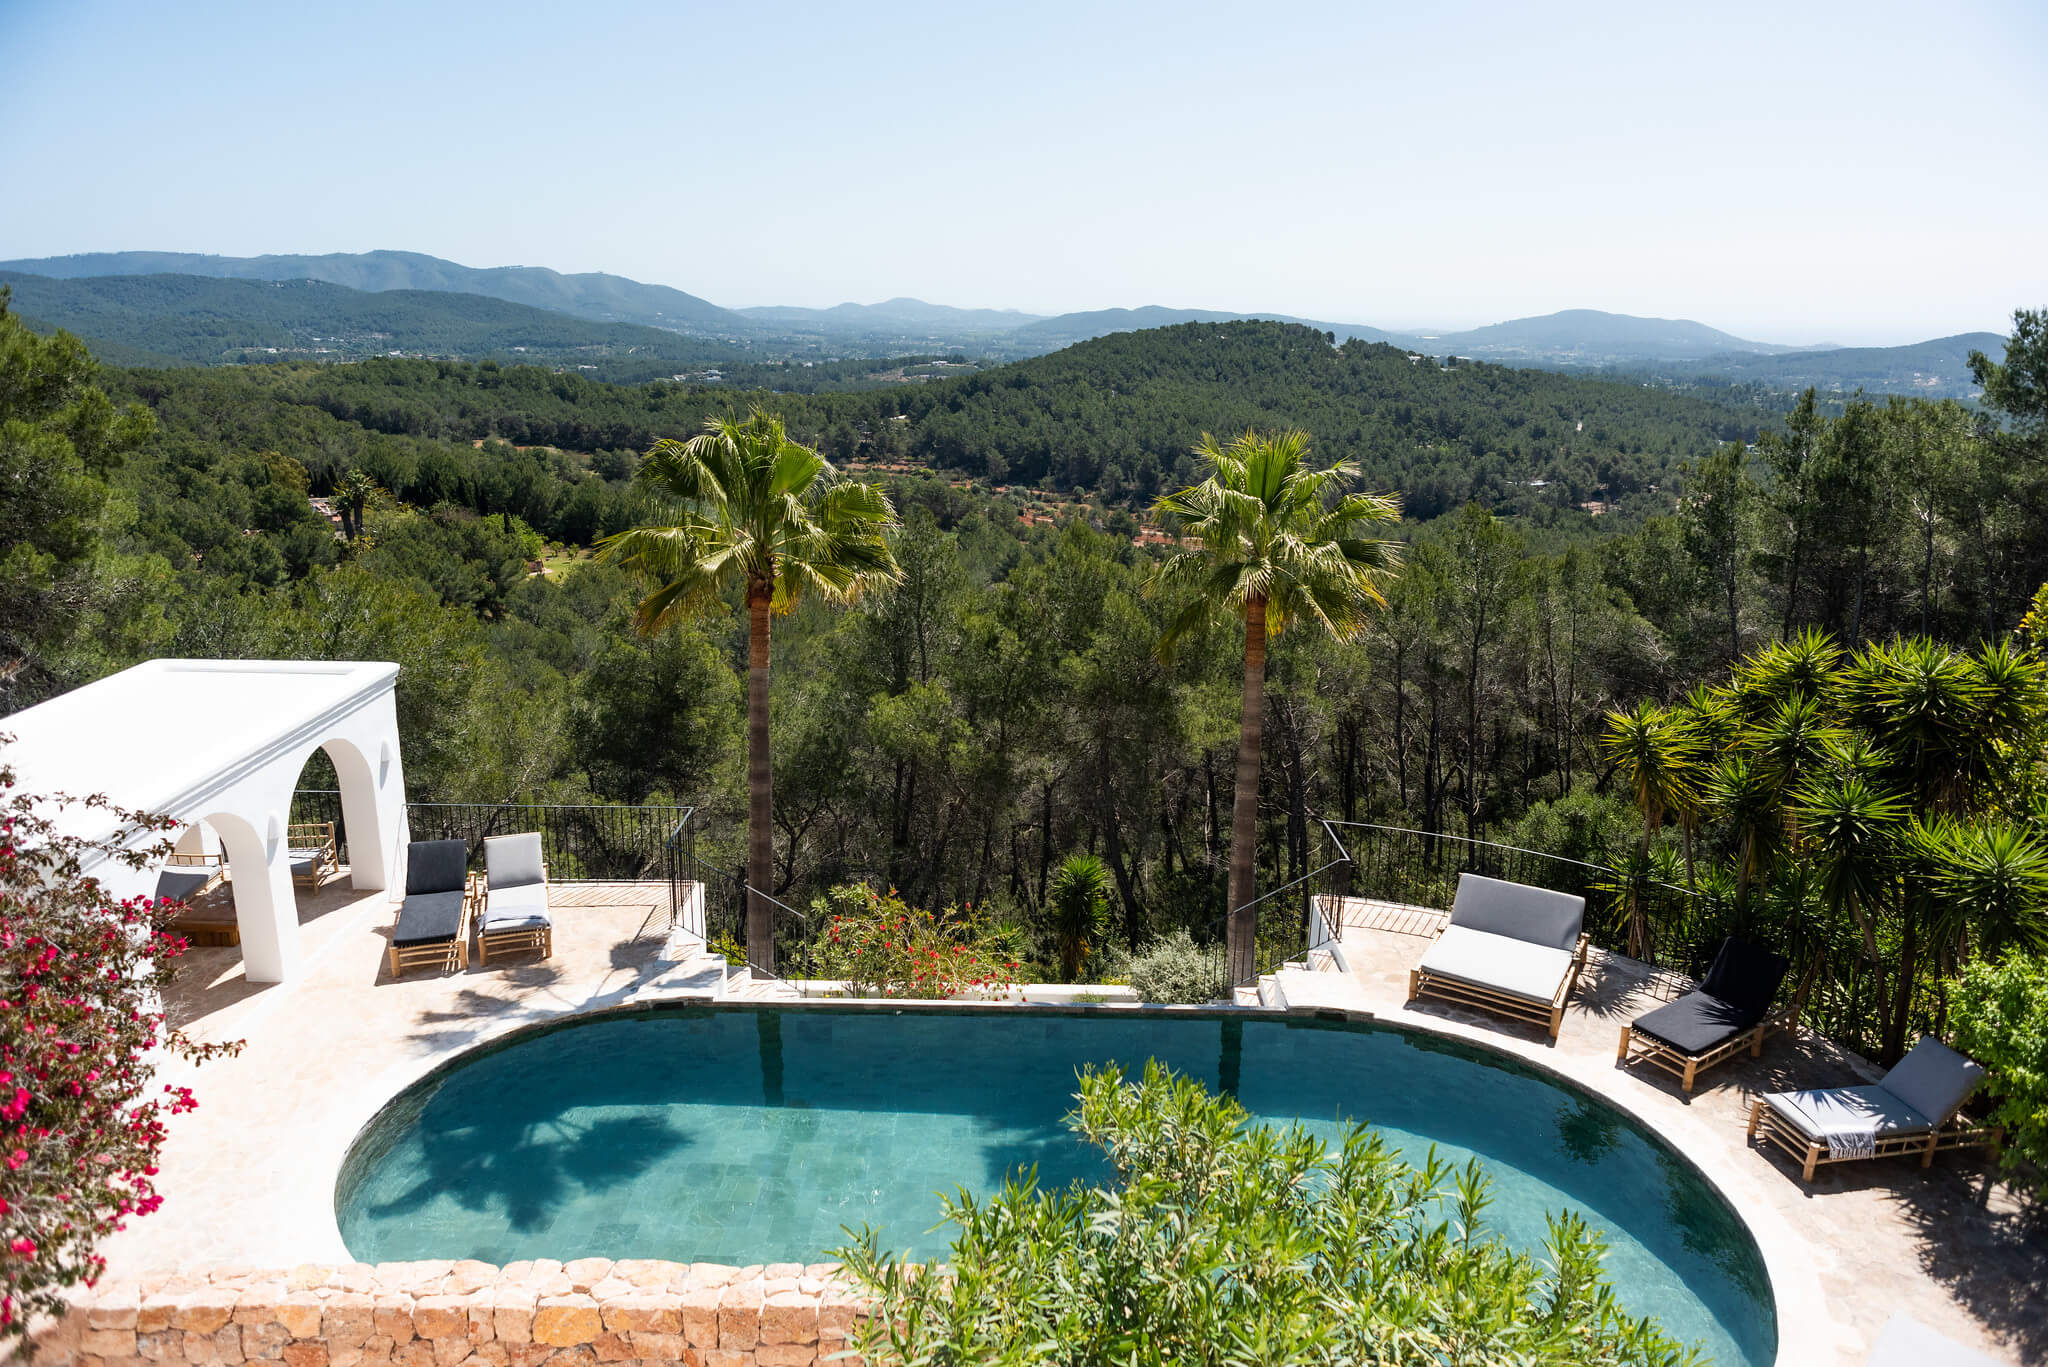 https://www.white-ibiza.com/wp-content/uploads/2020/05/white-ibiza-villas-can-cactus-view-over-pool.jpg